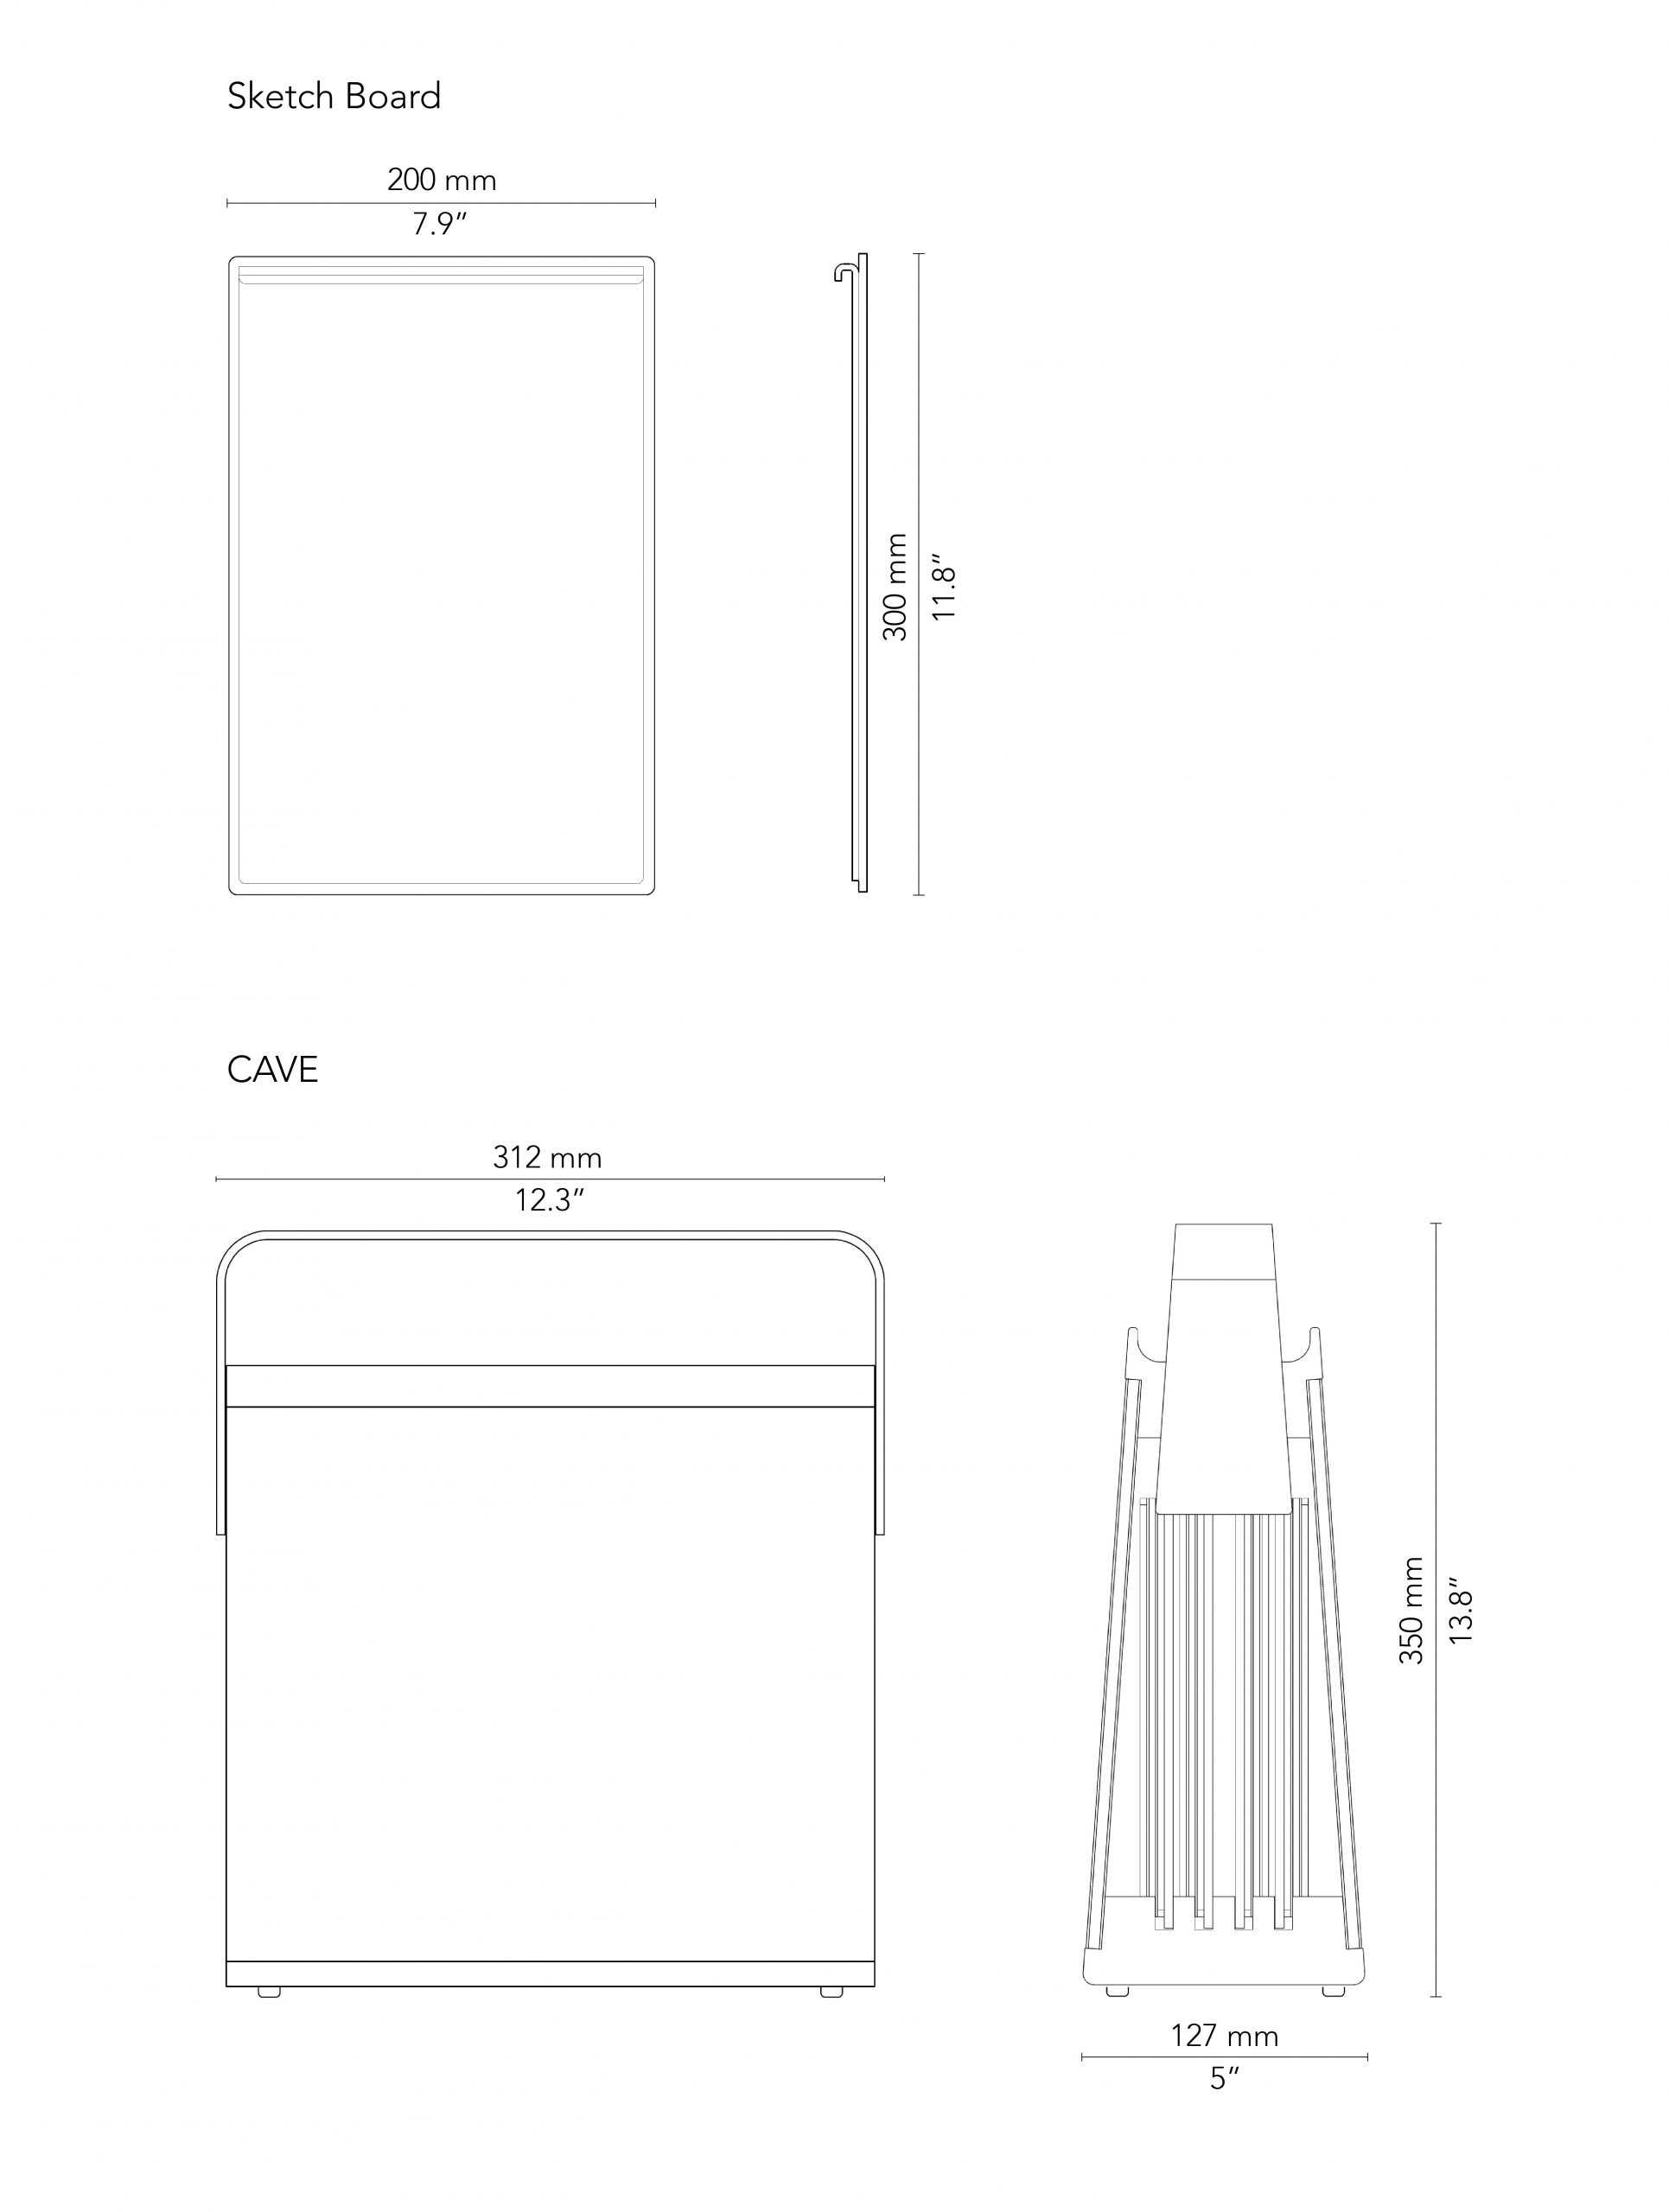 CHAT BOARD CAVE and Sketch Board drawings with measurements in mm